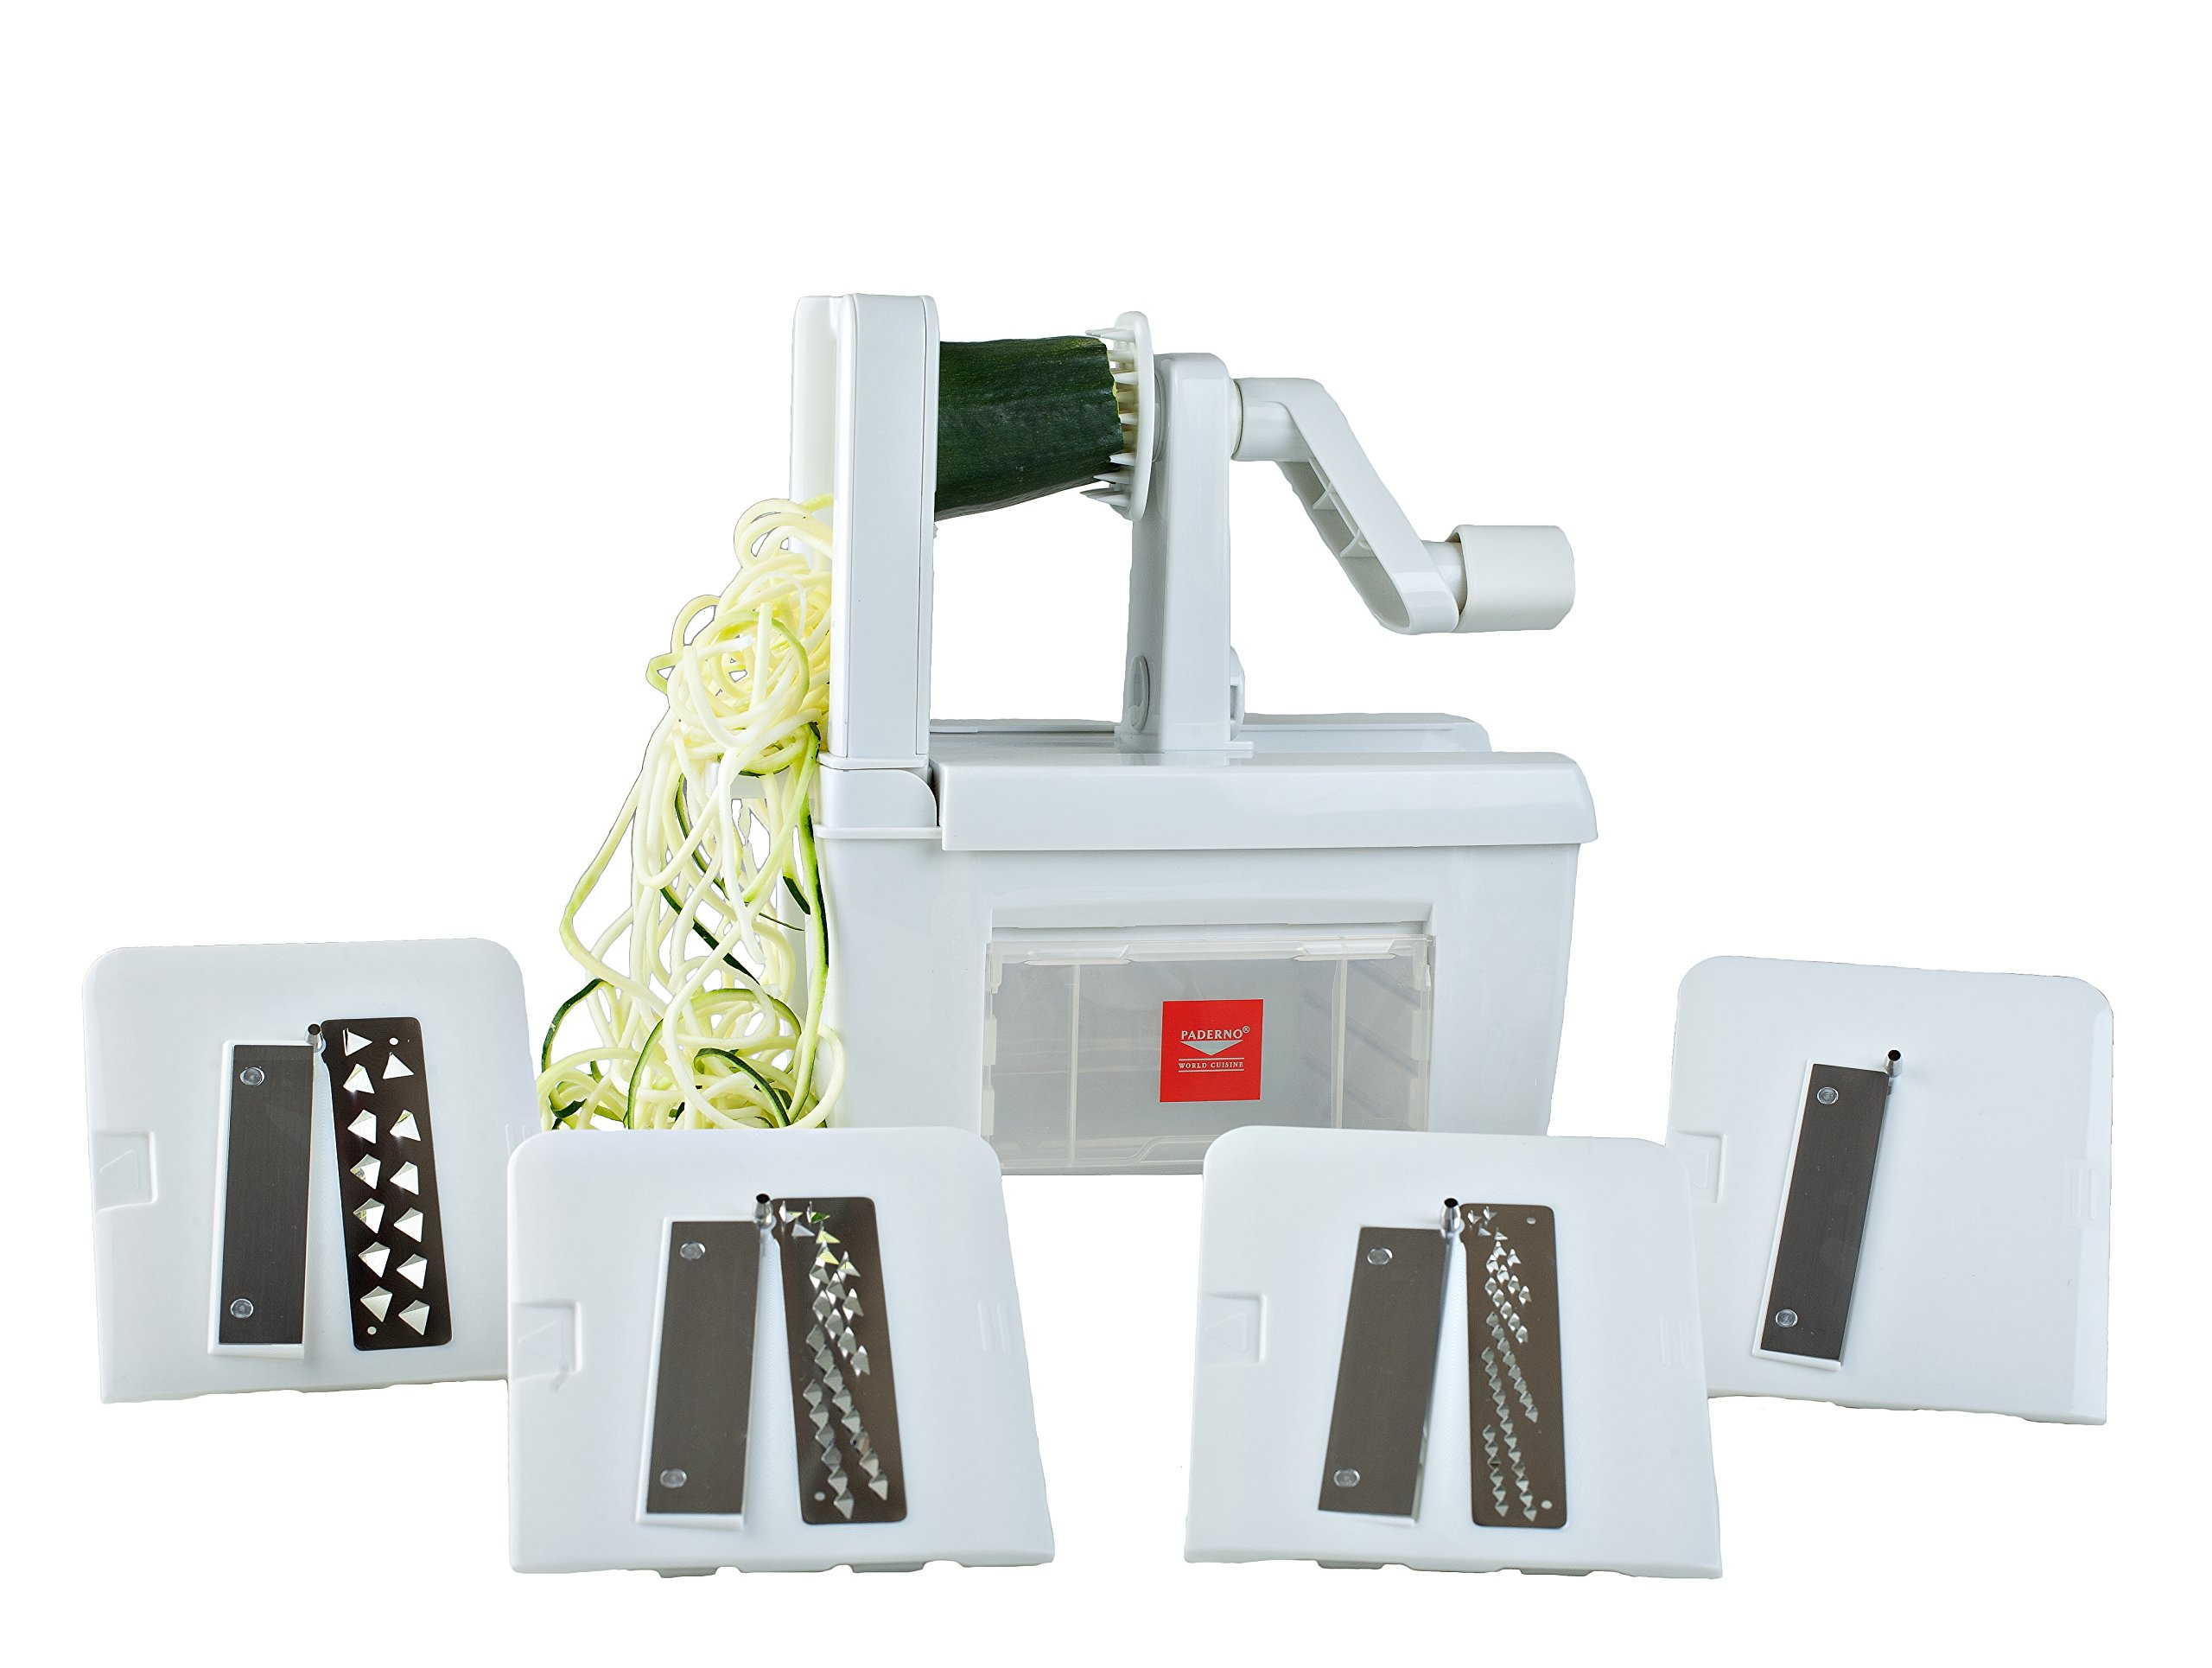 Paderno World Cuisine 4-Blade Folding Vegetable Slicer/Spiralizer Pro, Counter-Mounted and includes 4 Different Stainless Steel Blades